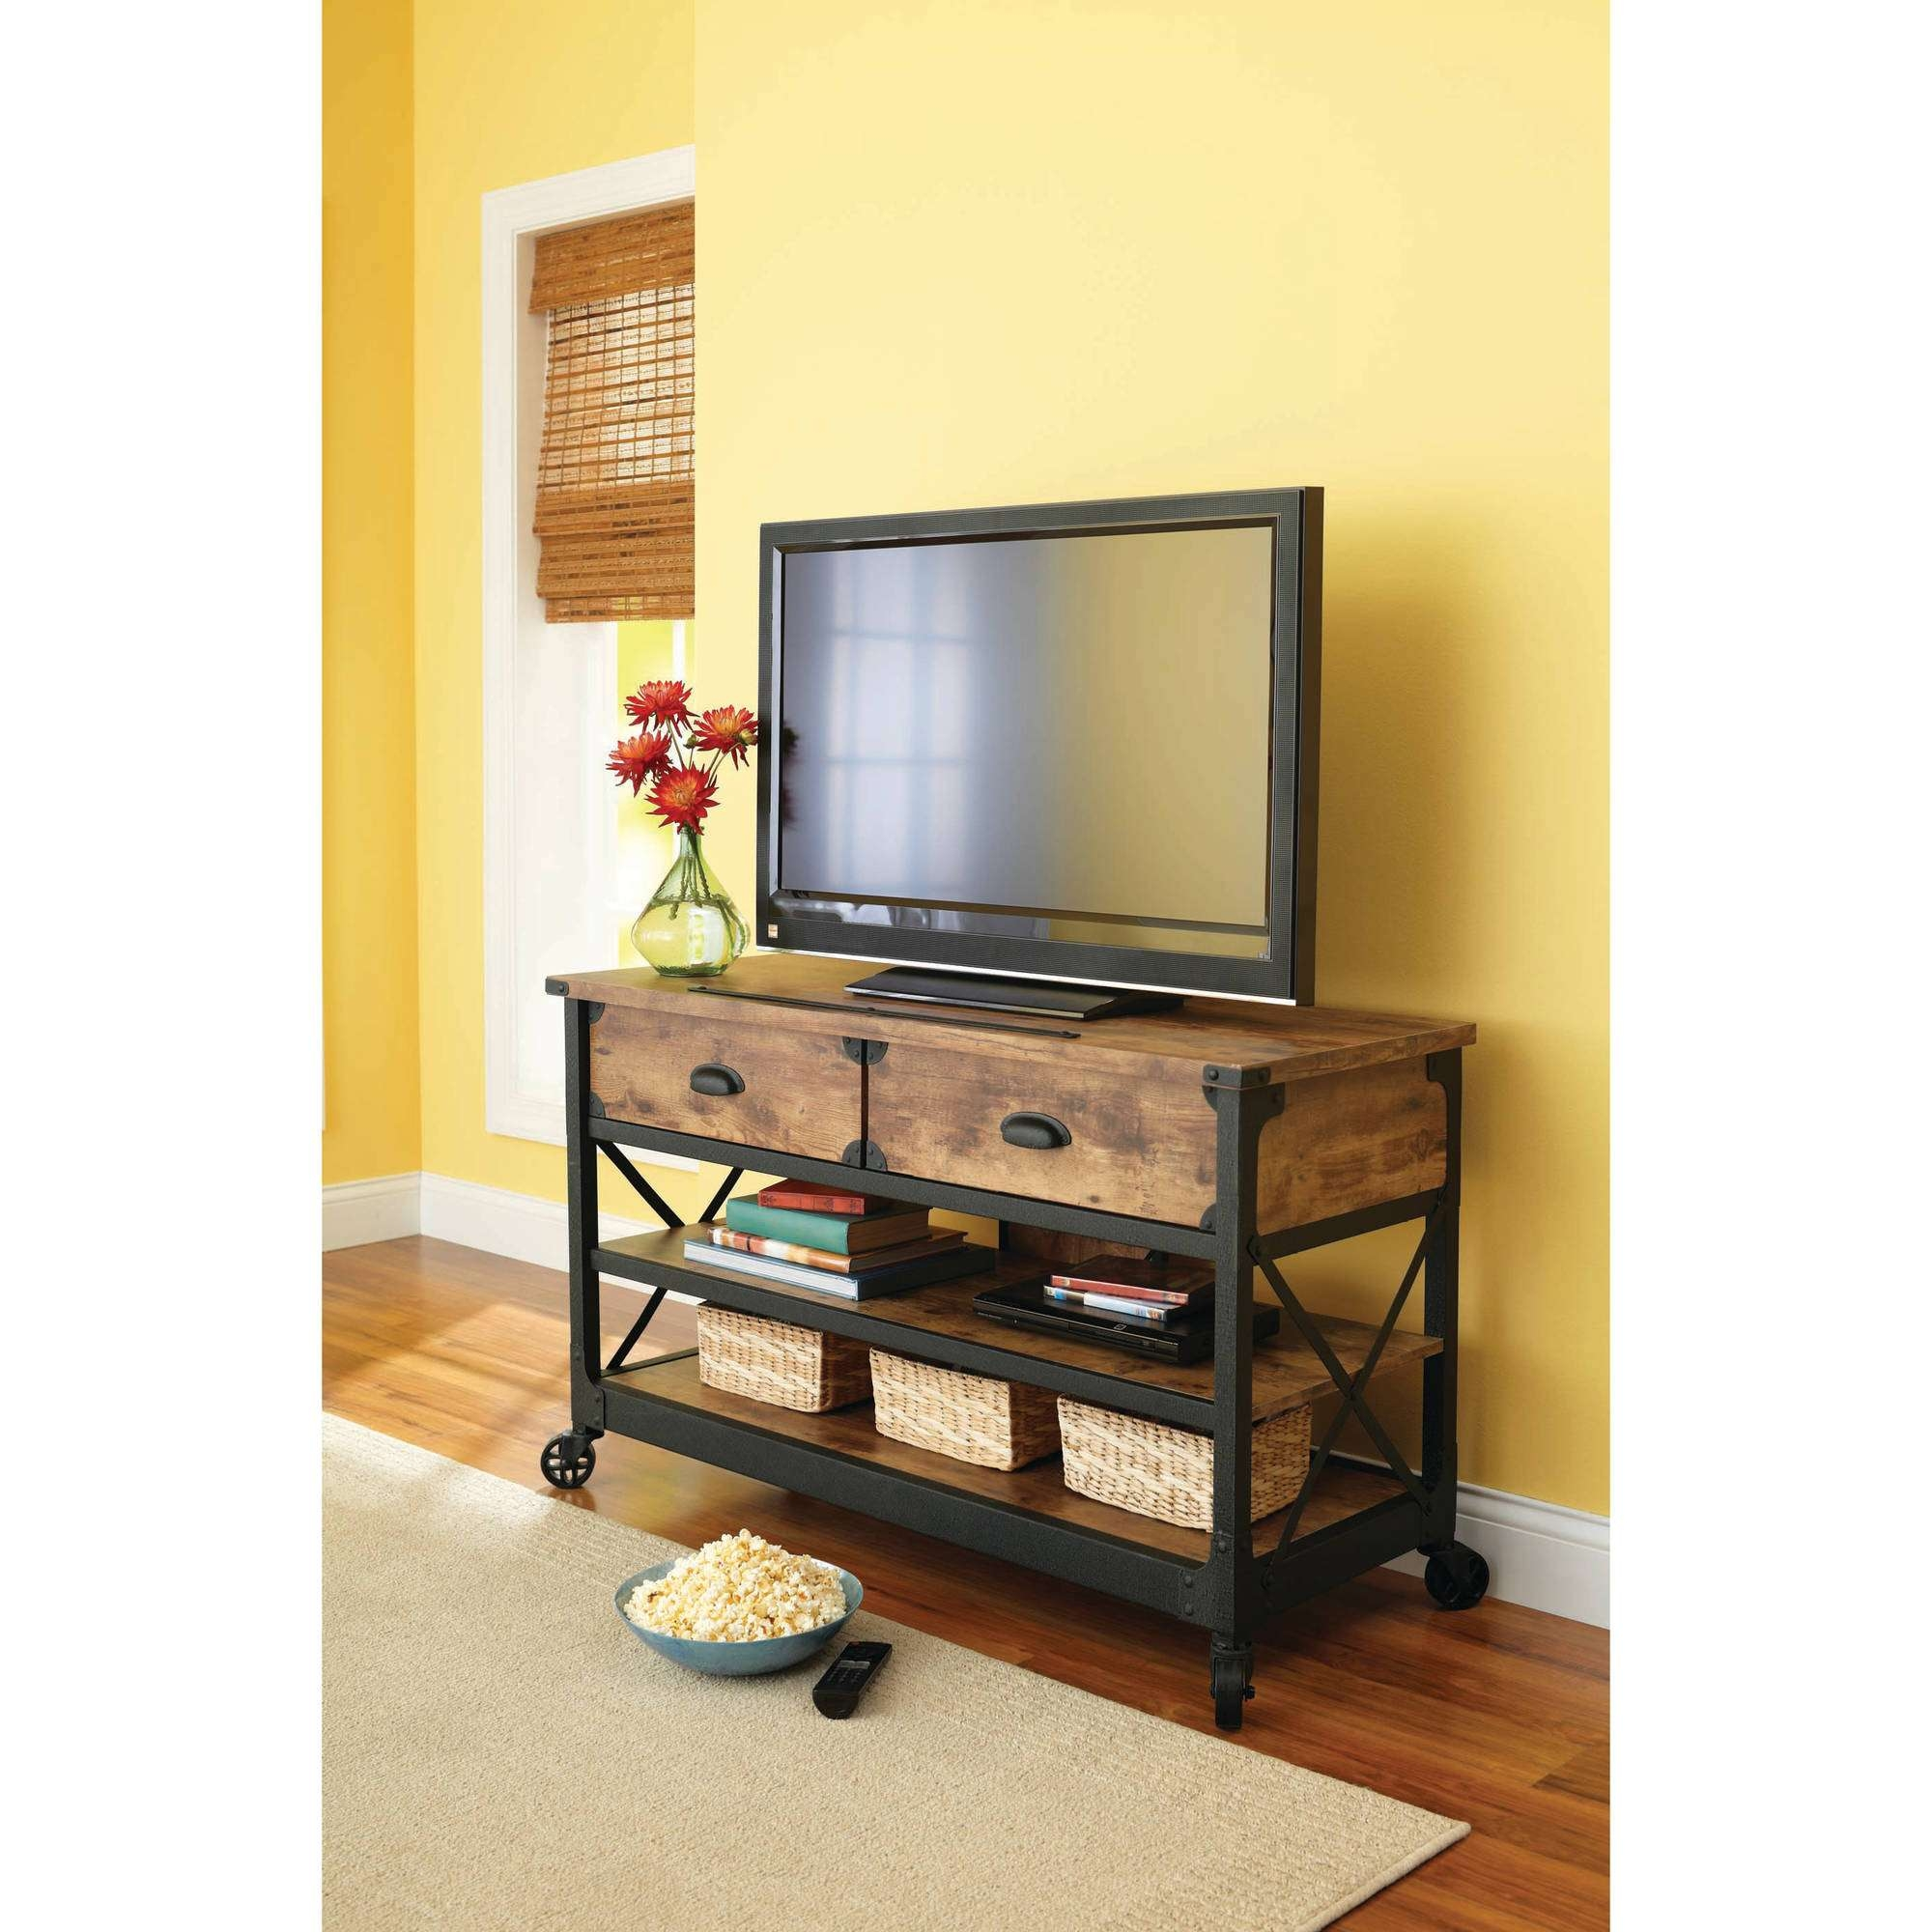 Fresh Rustic Tv Stands For Flat Screens 59 In Home Designing Regarding Rustic Tv Cabinets (View 6 of 20)